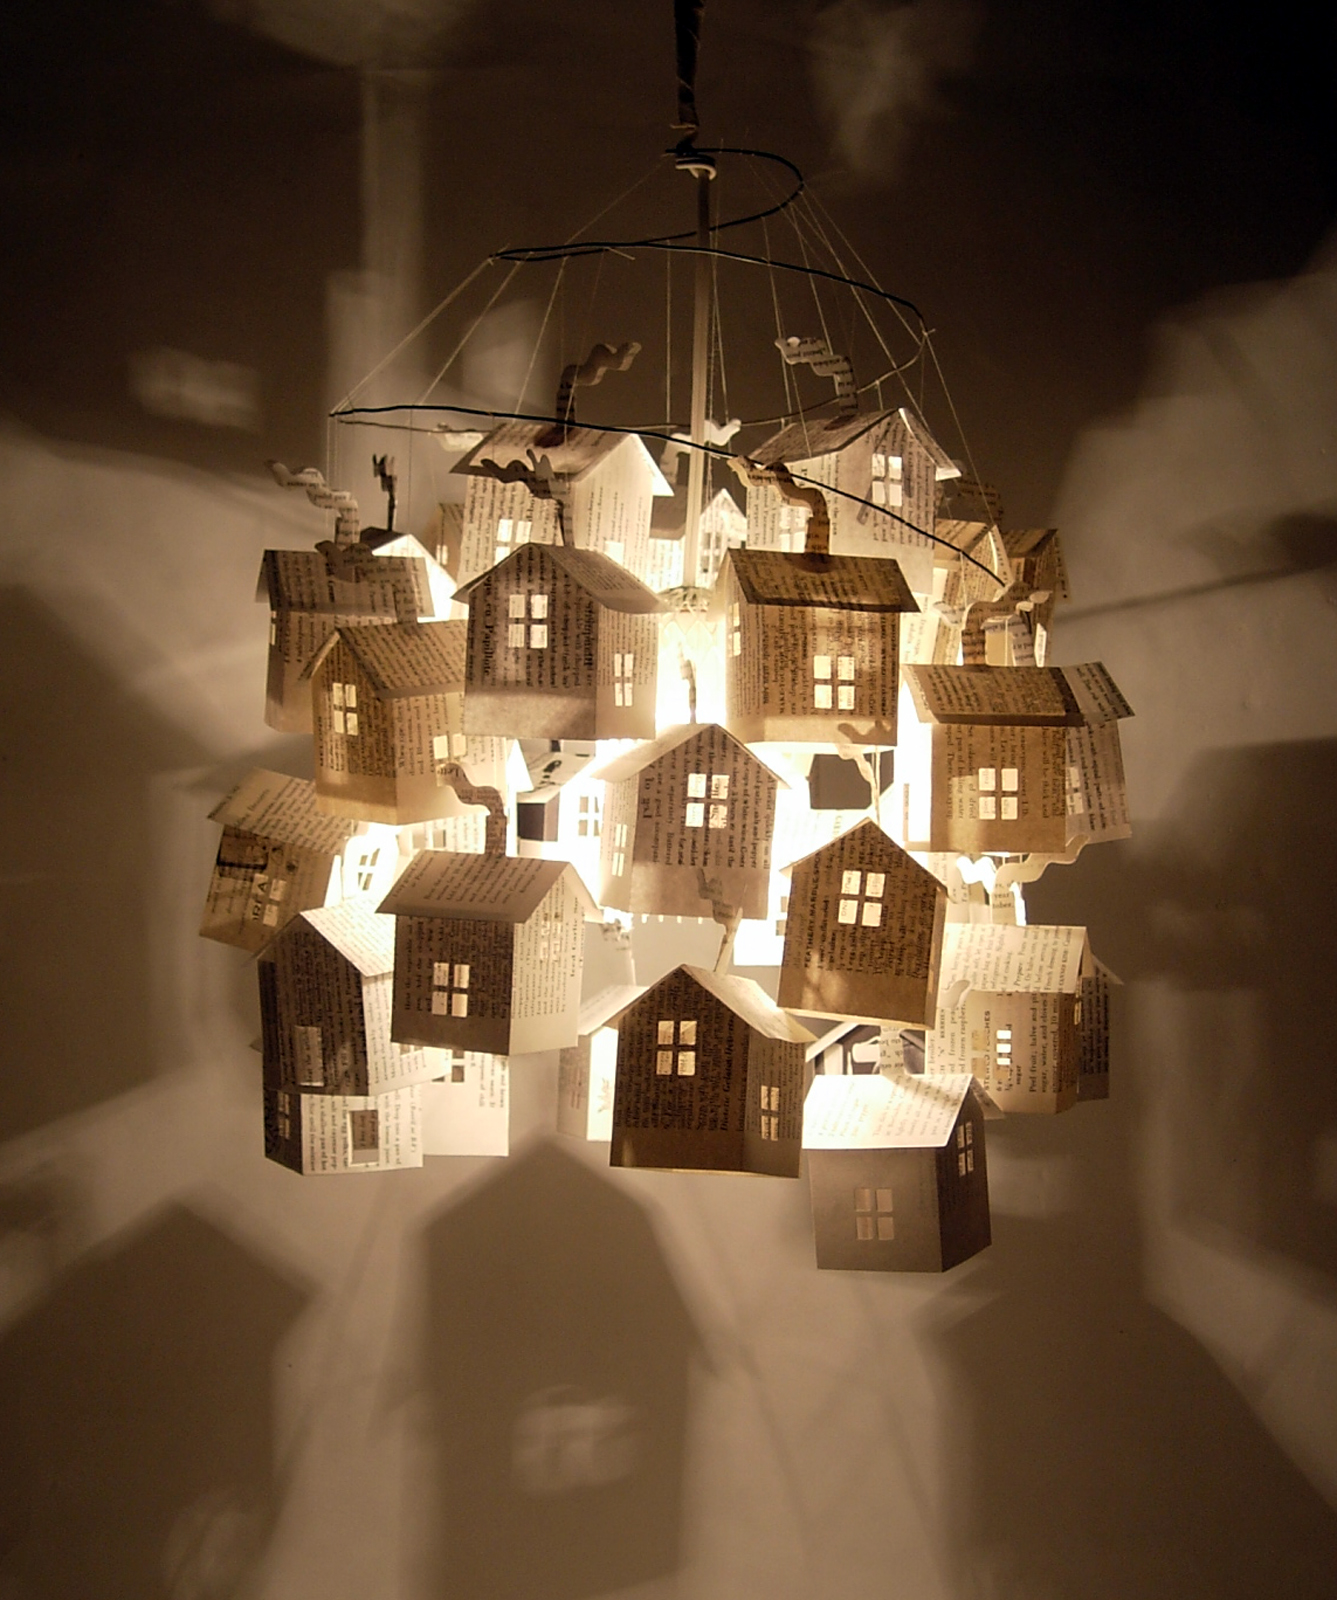 I had to add the very latest addition to the light of hutch. Hung it just this morning in fact. It is a pendant style light comprised of 33 paper houses ... : paper light pendant - azcodes.com